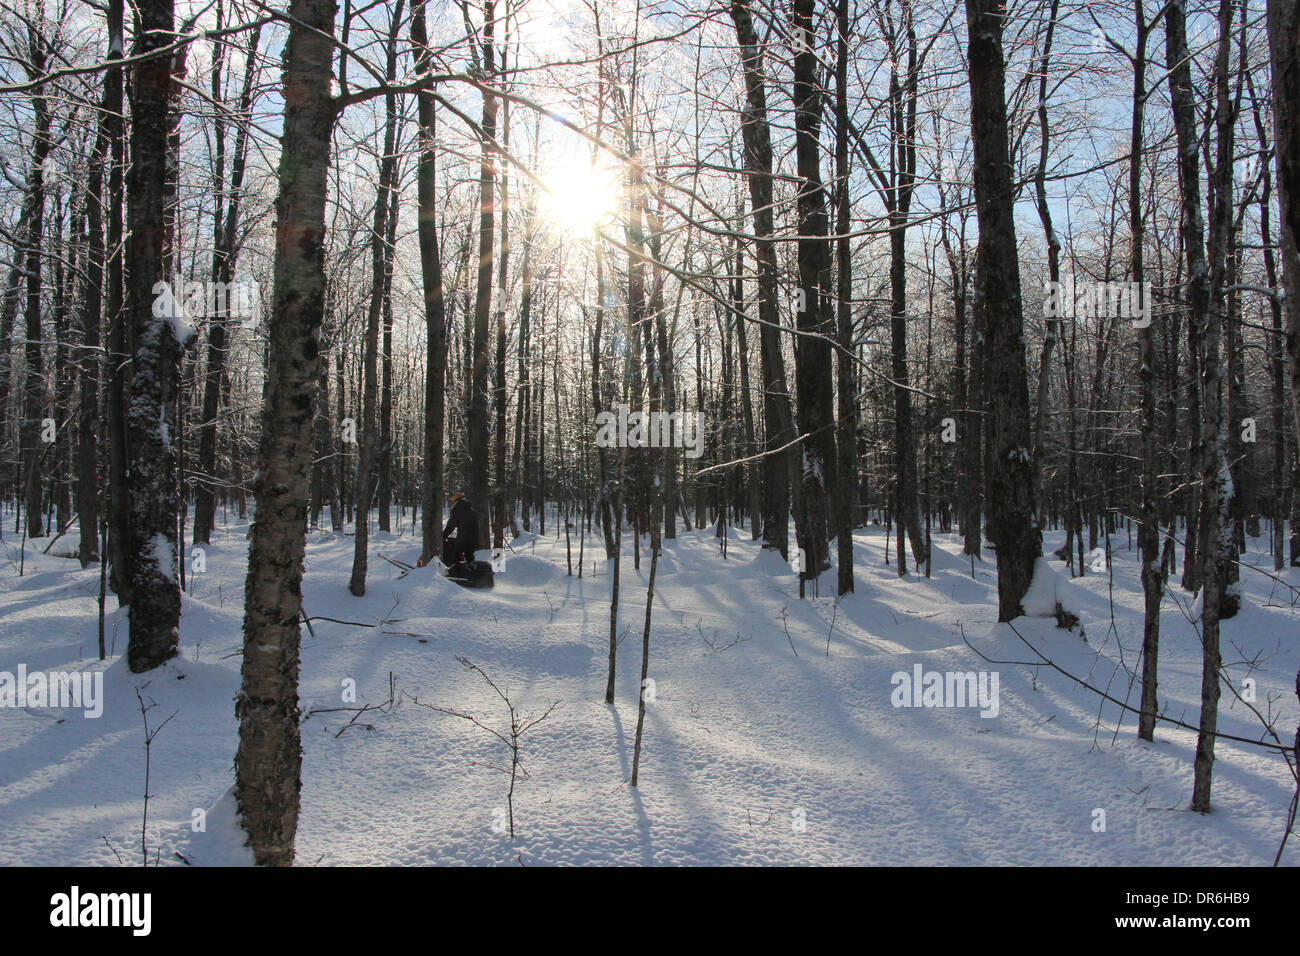 A snowmobile traveling through a wooded area in Quebec, Canada. - Stock Image